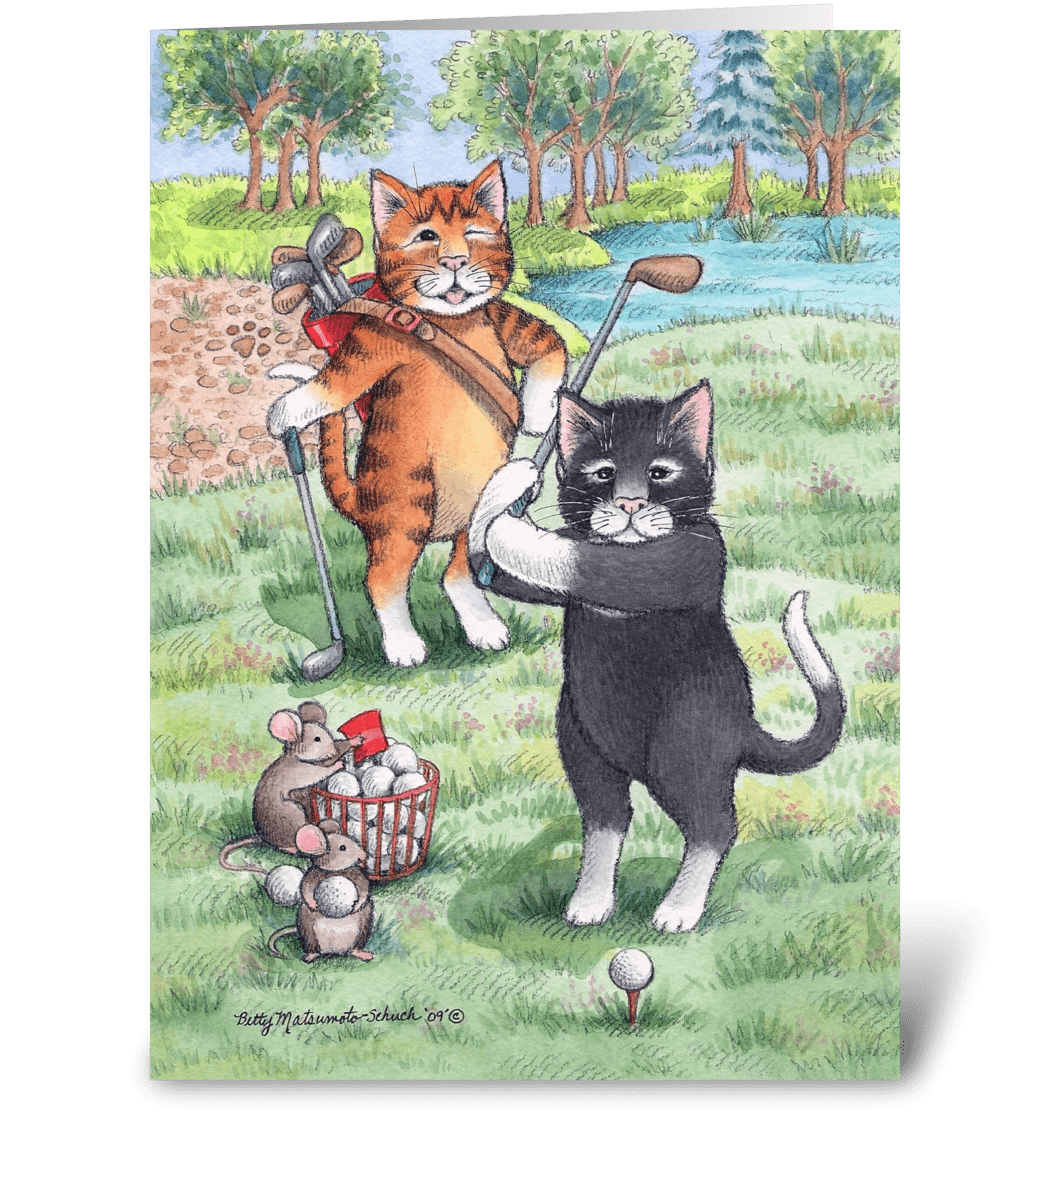 Golfing Cats Happy Birthday Send This Greeting Card Designed Betty Matsumoto Schuch Gnome Png 1050x1188